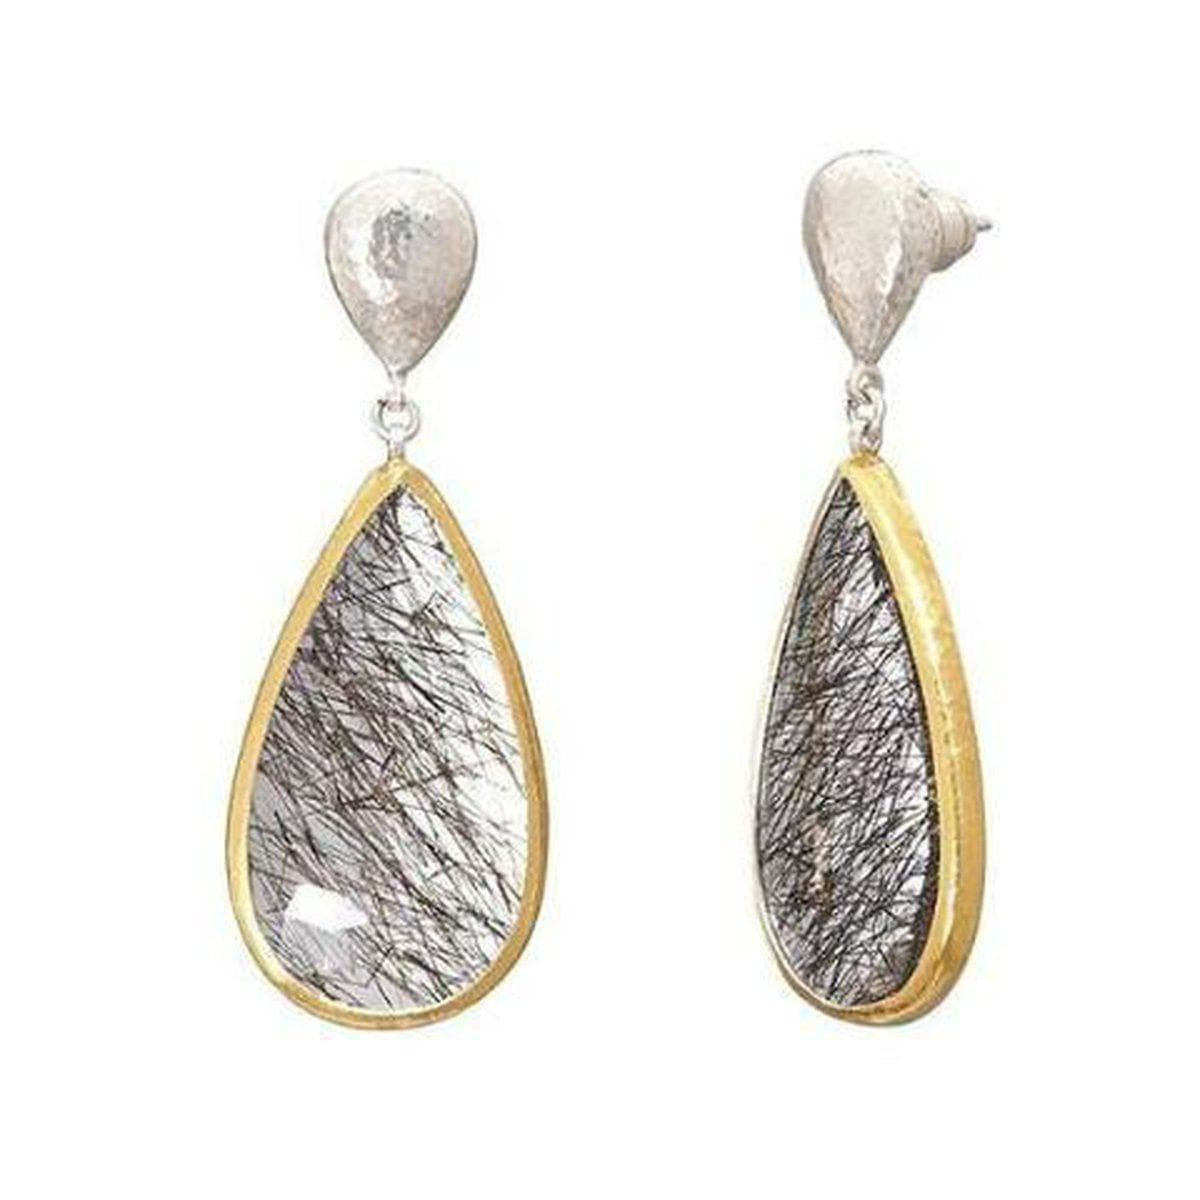 Galapagos Sterling Silver Tourmalinated Quartz Earrings - SE-U25726-QTT-GURHAN-Renee Taylor Gallery